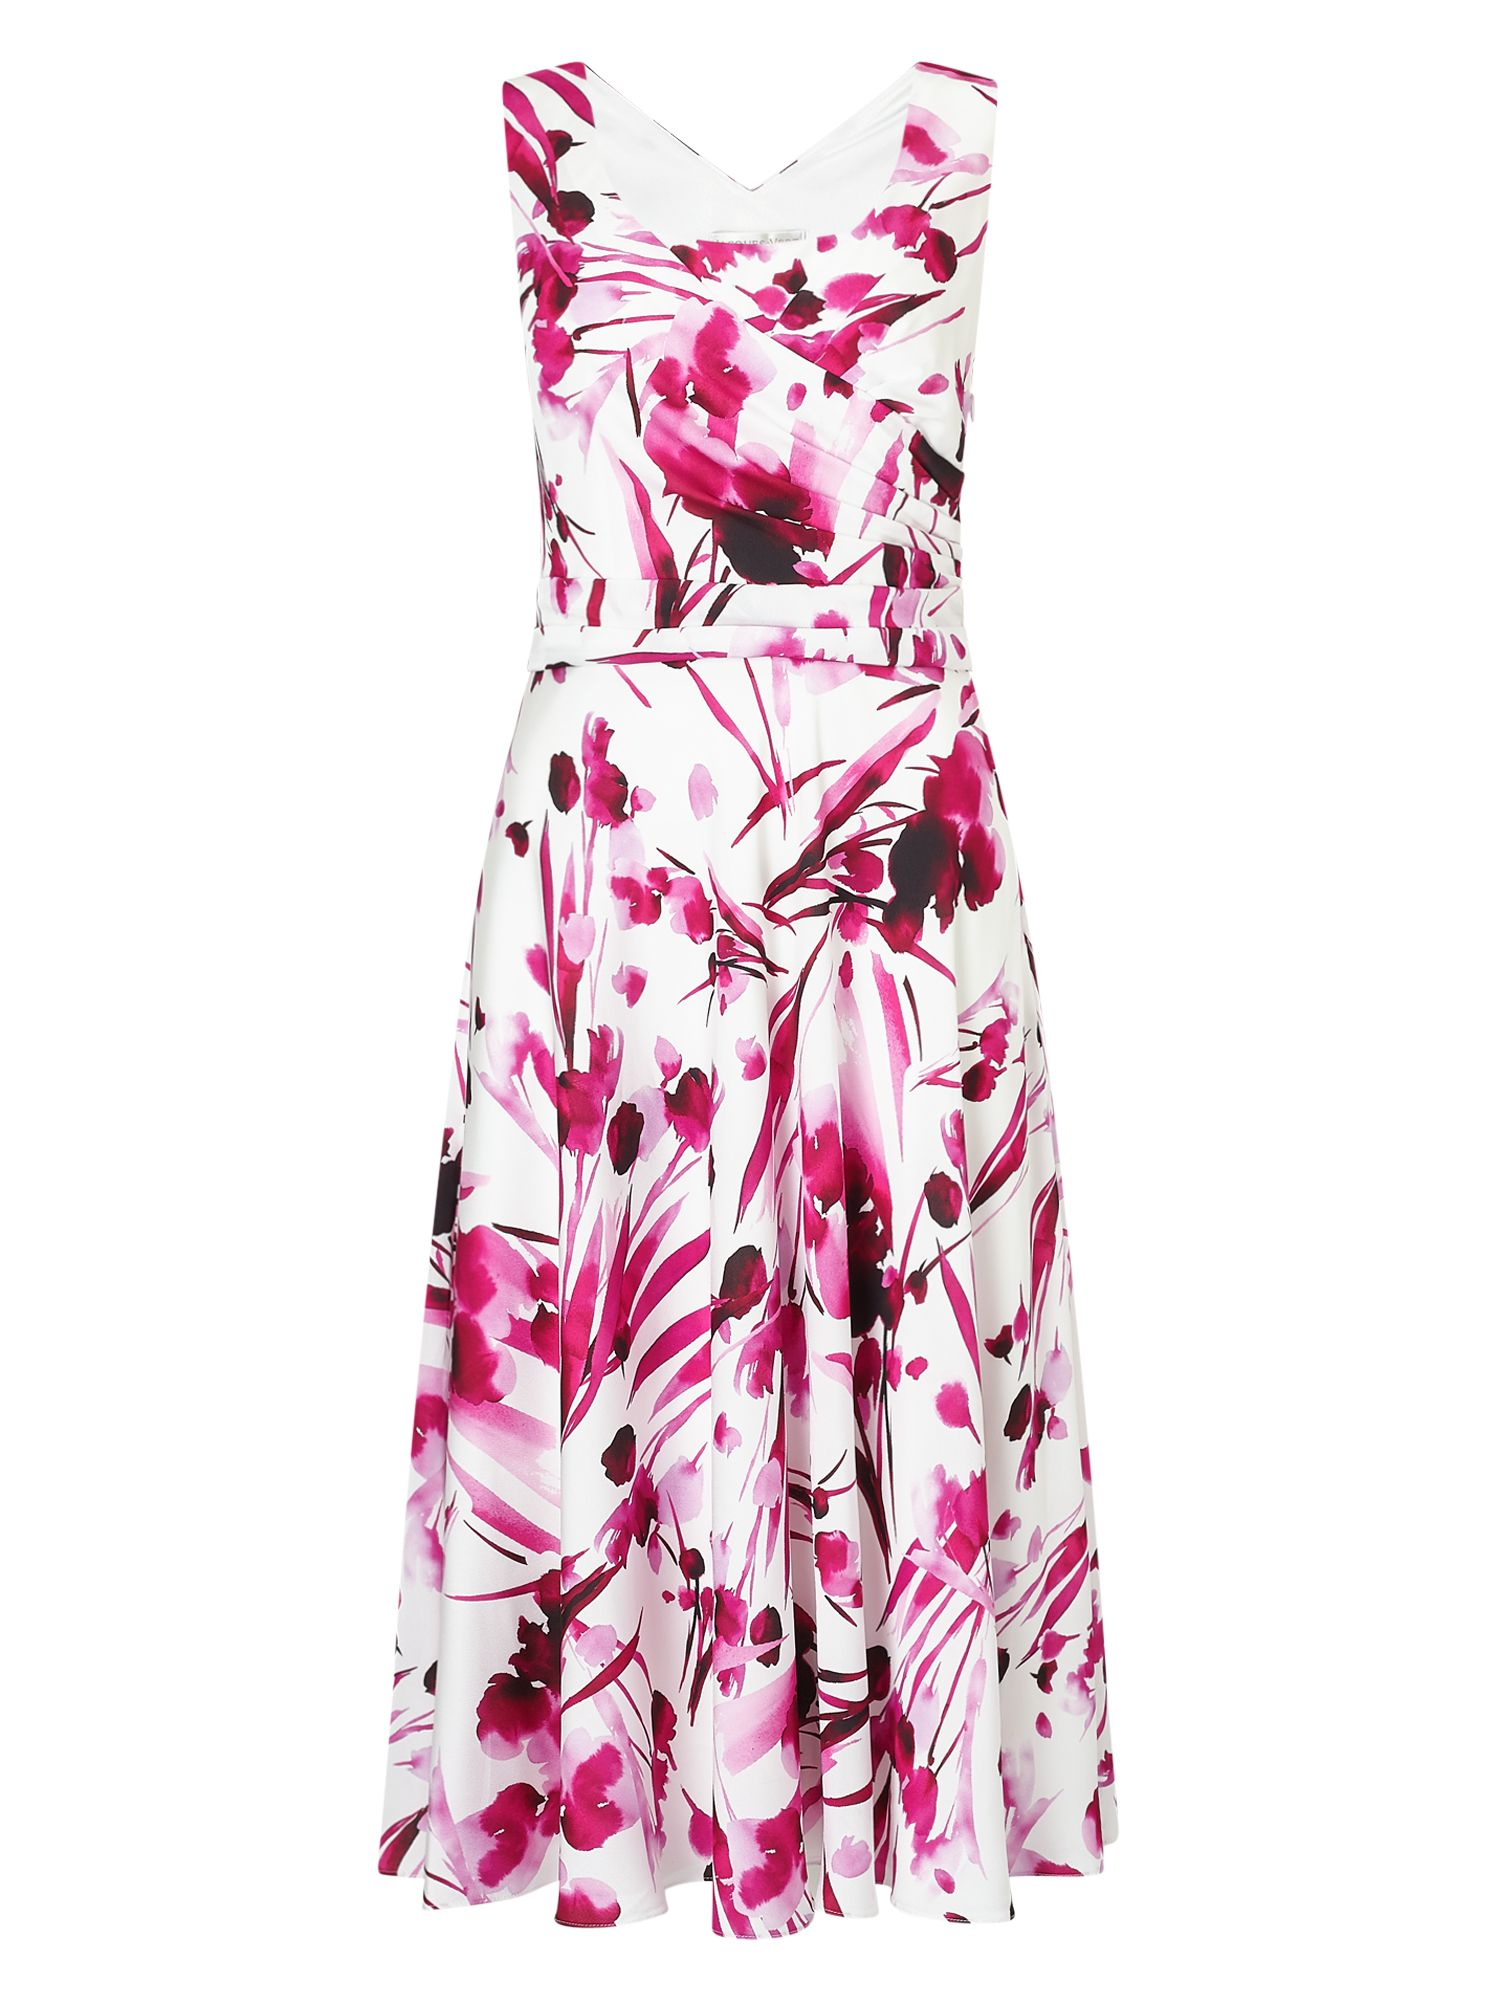 Jacques Vert Soft Print Dress, Pink